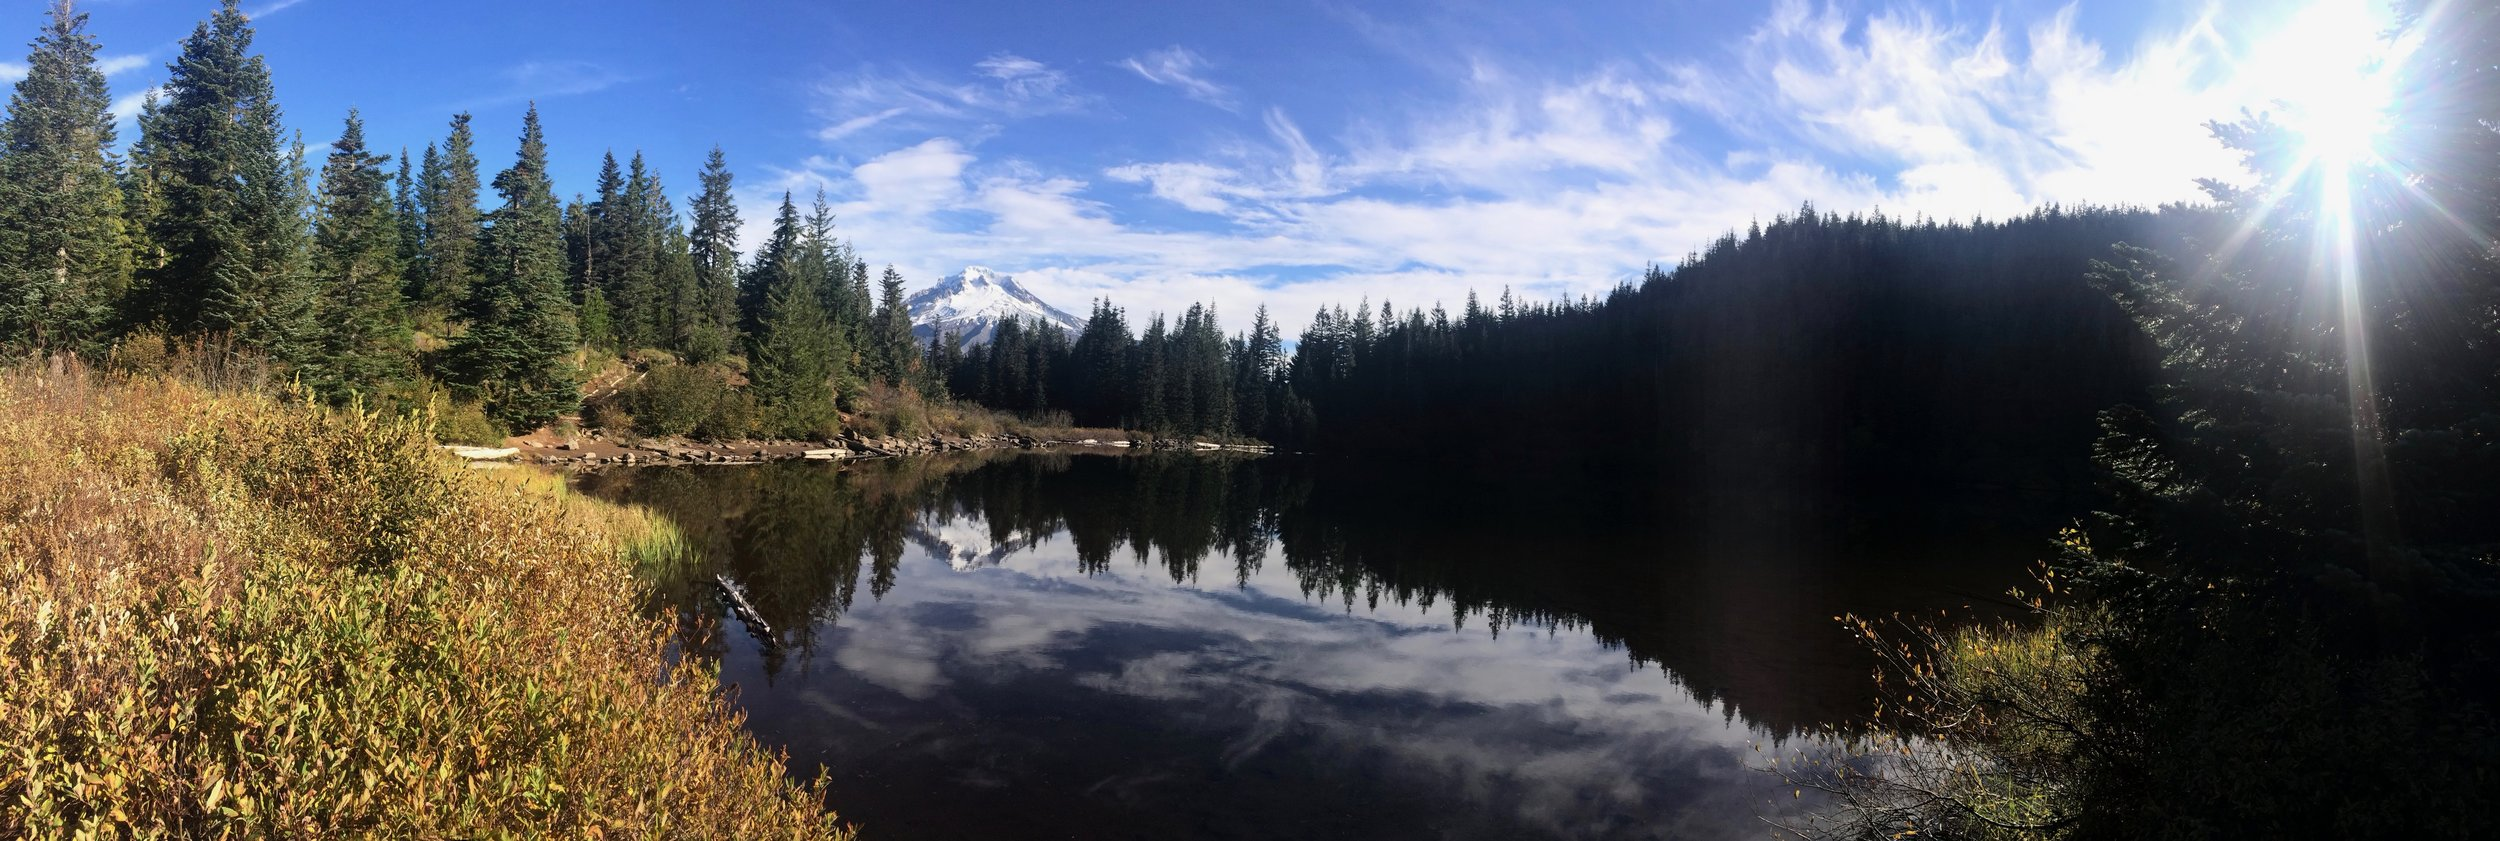 The majesty of the Pacific Northwest (Mount Hood National Forest, OR)